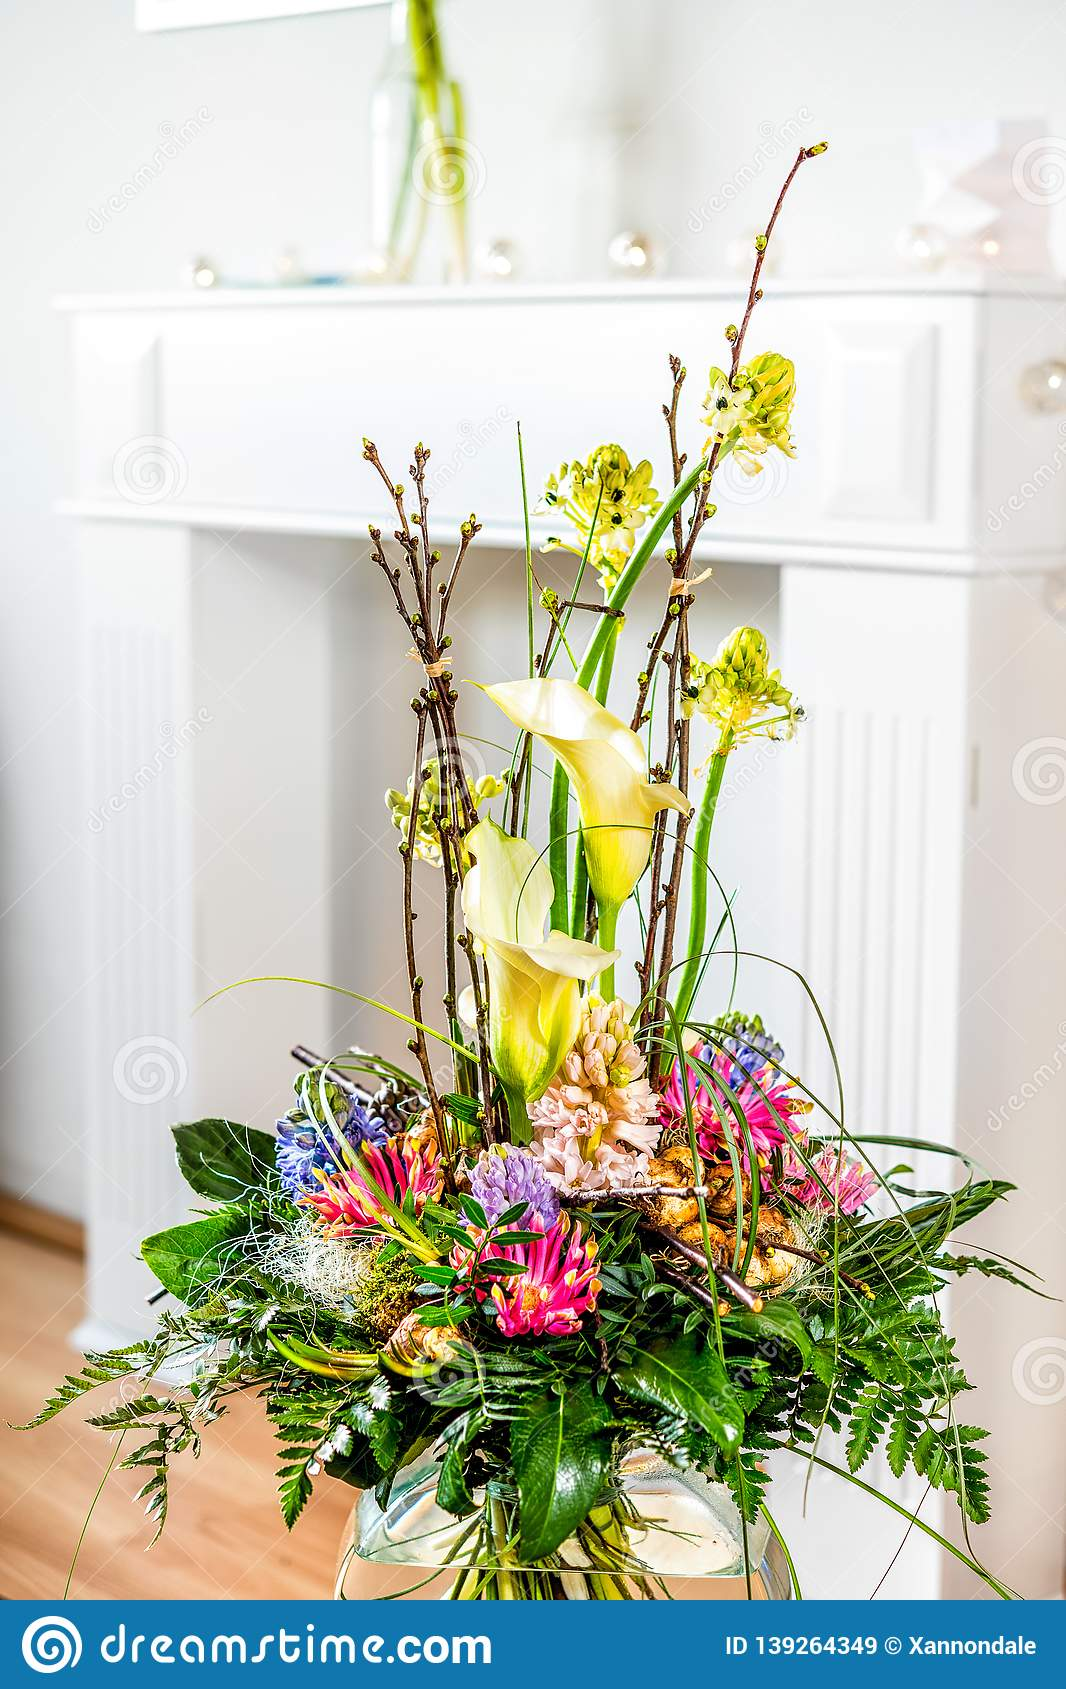 Flower In Living Room Stock Image Image Of Flora Flowers 139264349